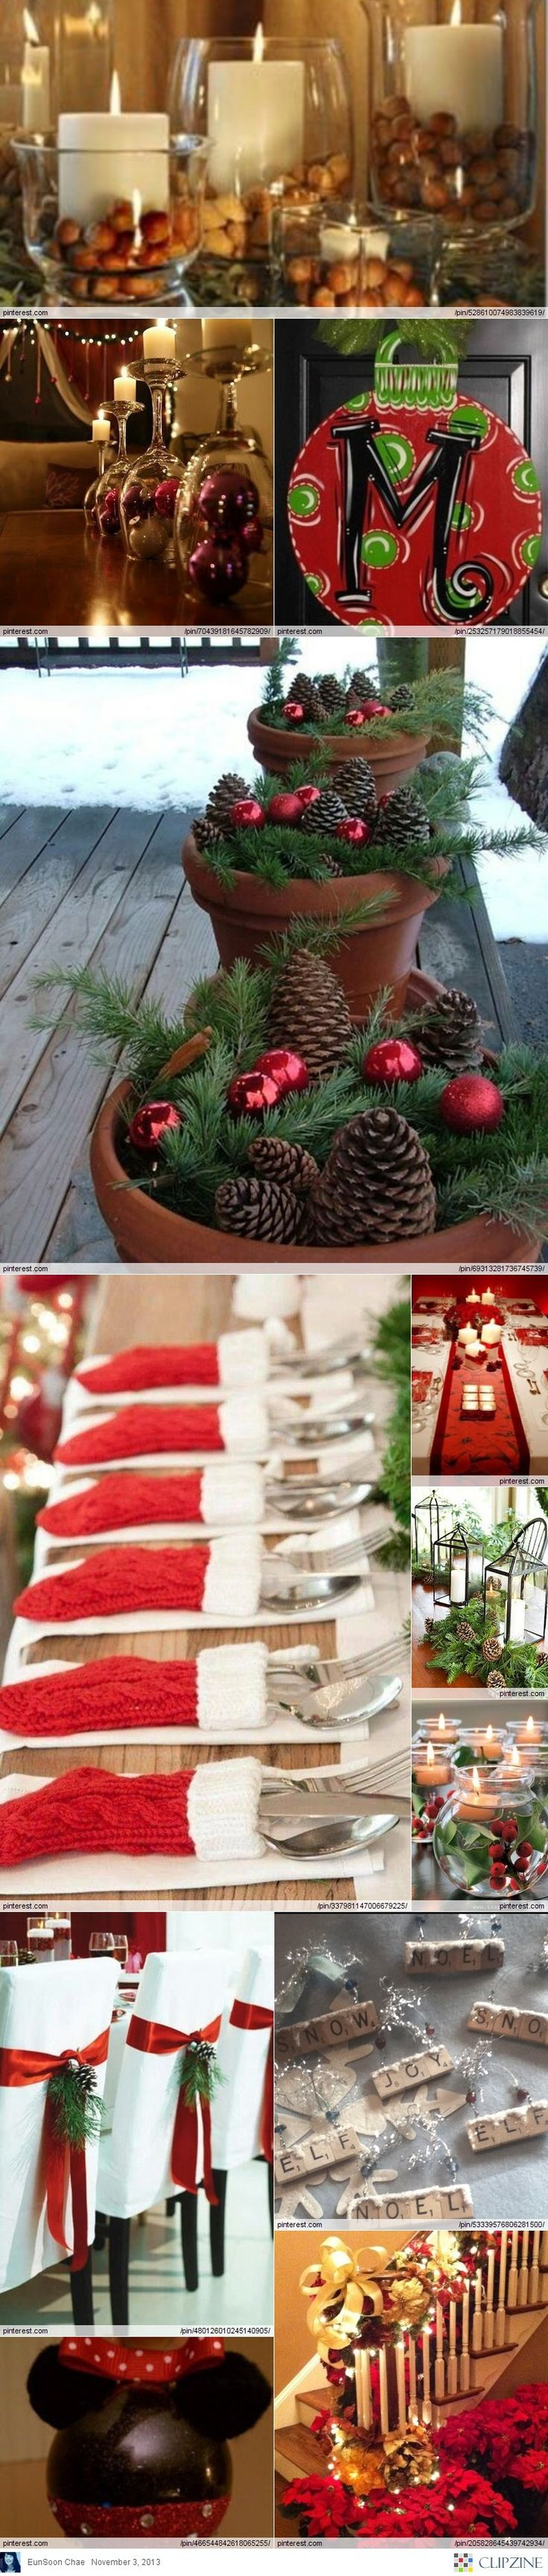 Christmas Decorations - love the terra cotta pots, great use for them during the winter.